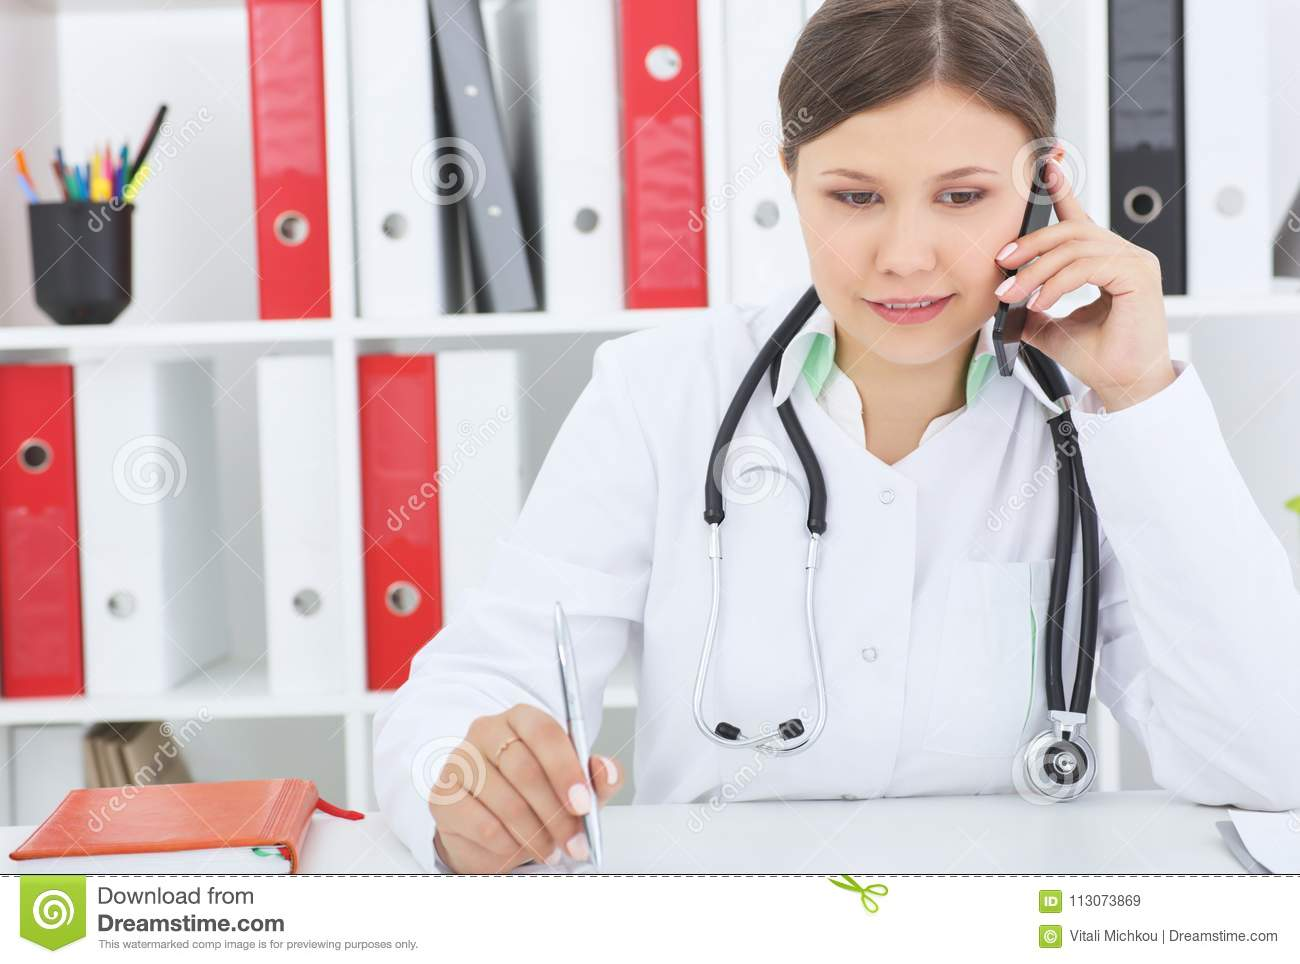 Young female doctor talking on phone at her desk in office.